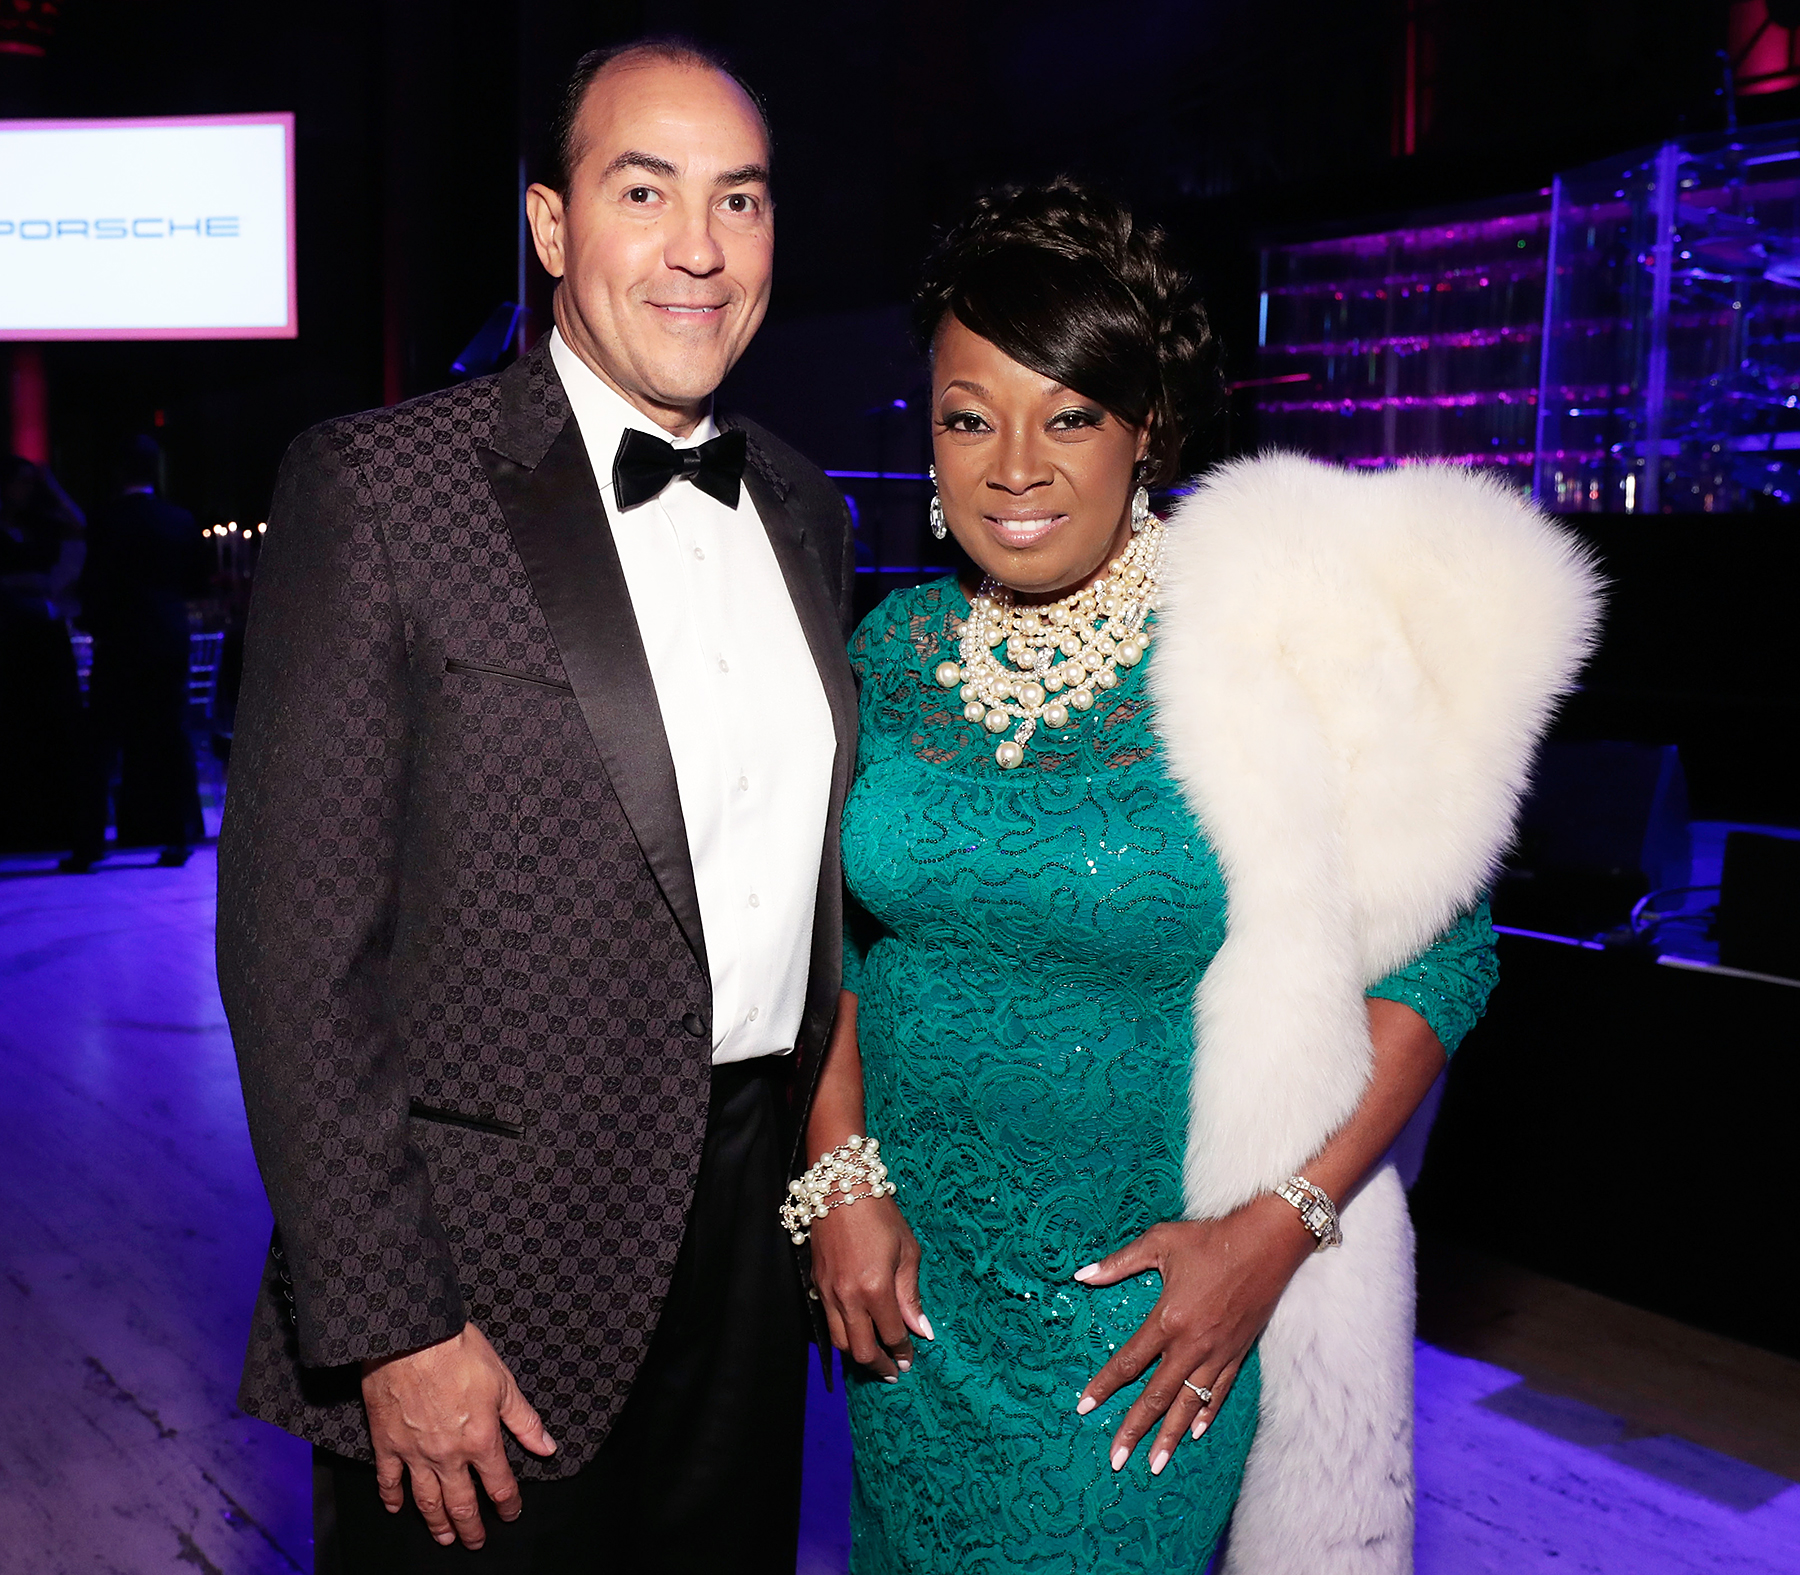 Star Jones Marries Ricardo Lugo on a Cruise Ship